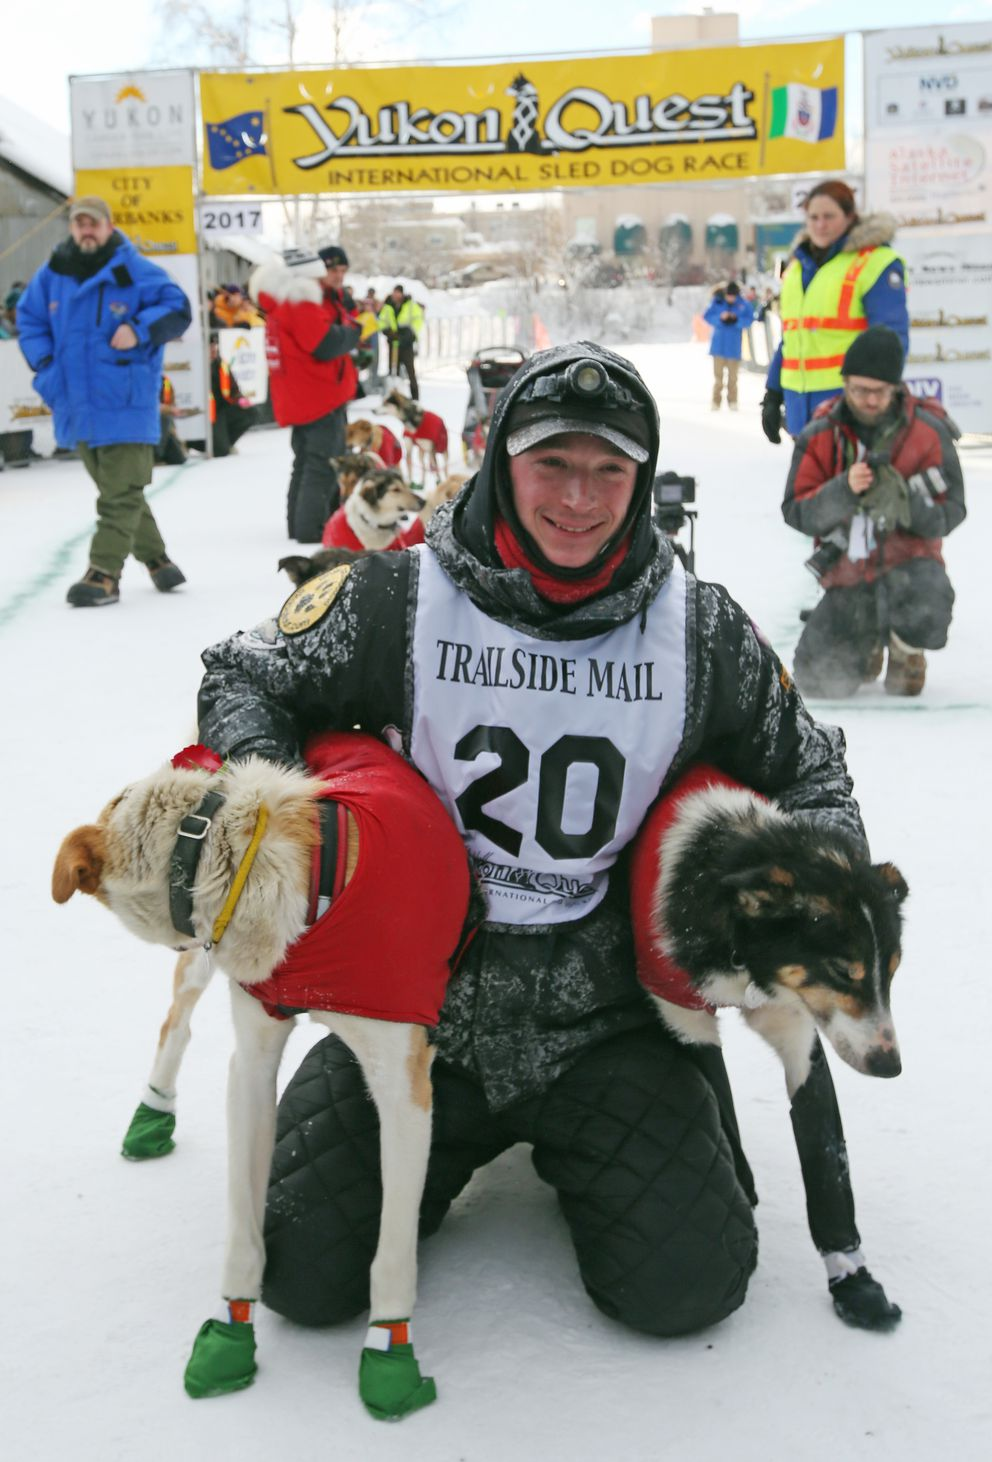 Matt Hall poses with his lead dogs Tuesday in Fairbanks after winning the Yukon Quest International Sled Dog Race. The 1,000-mile race began in Whitehorse, Yukon, on Feb. 4. (Eric Engman / Fairbanks Daily News-Miner)